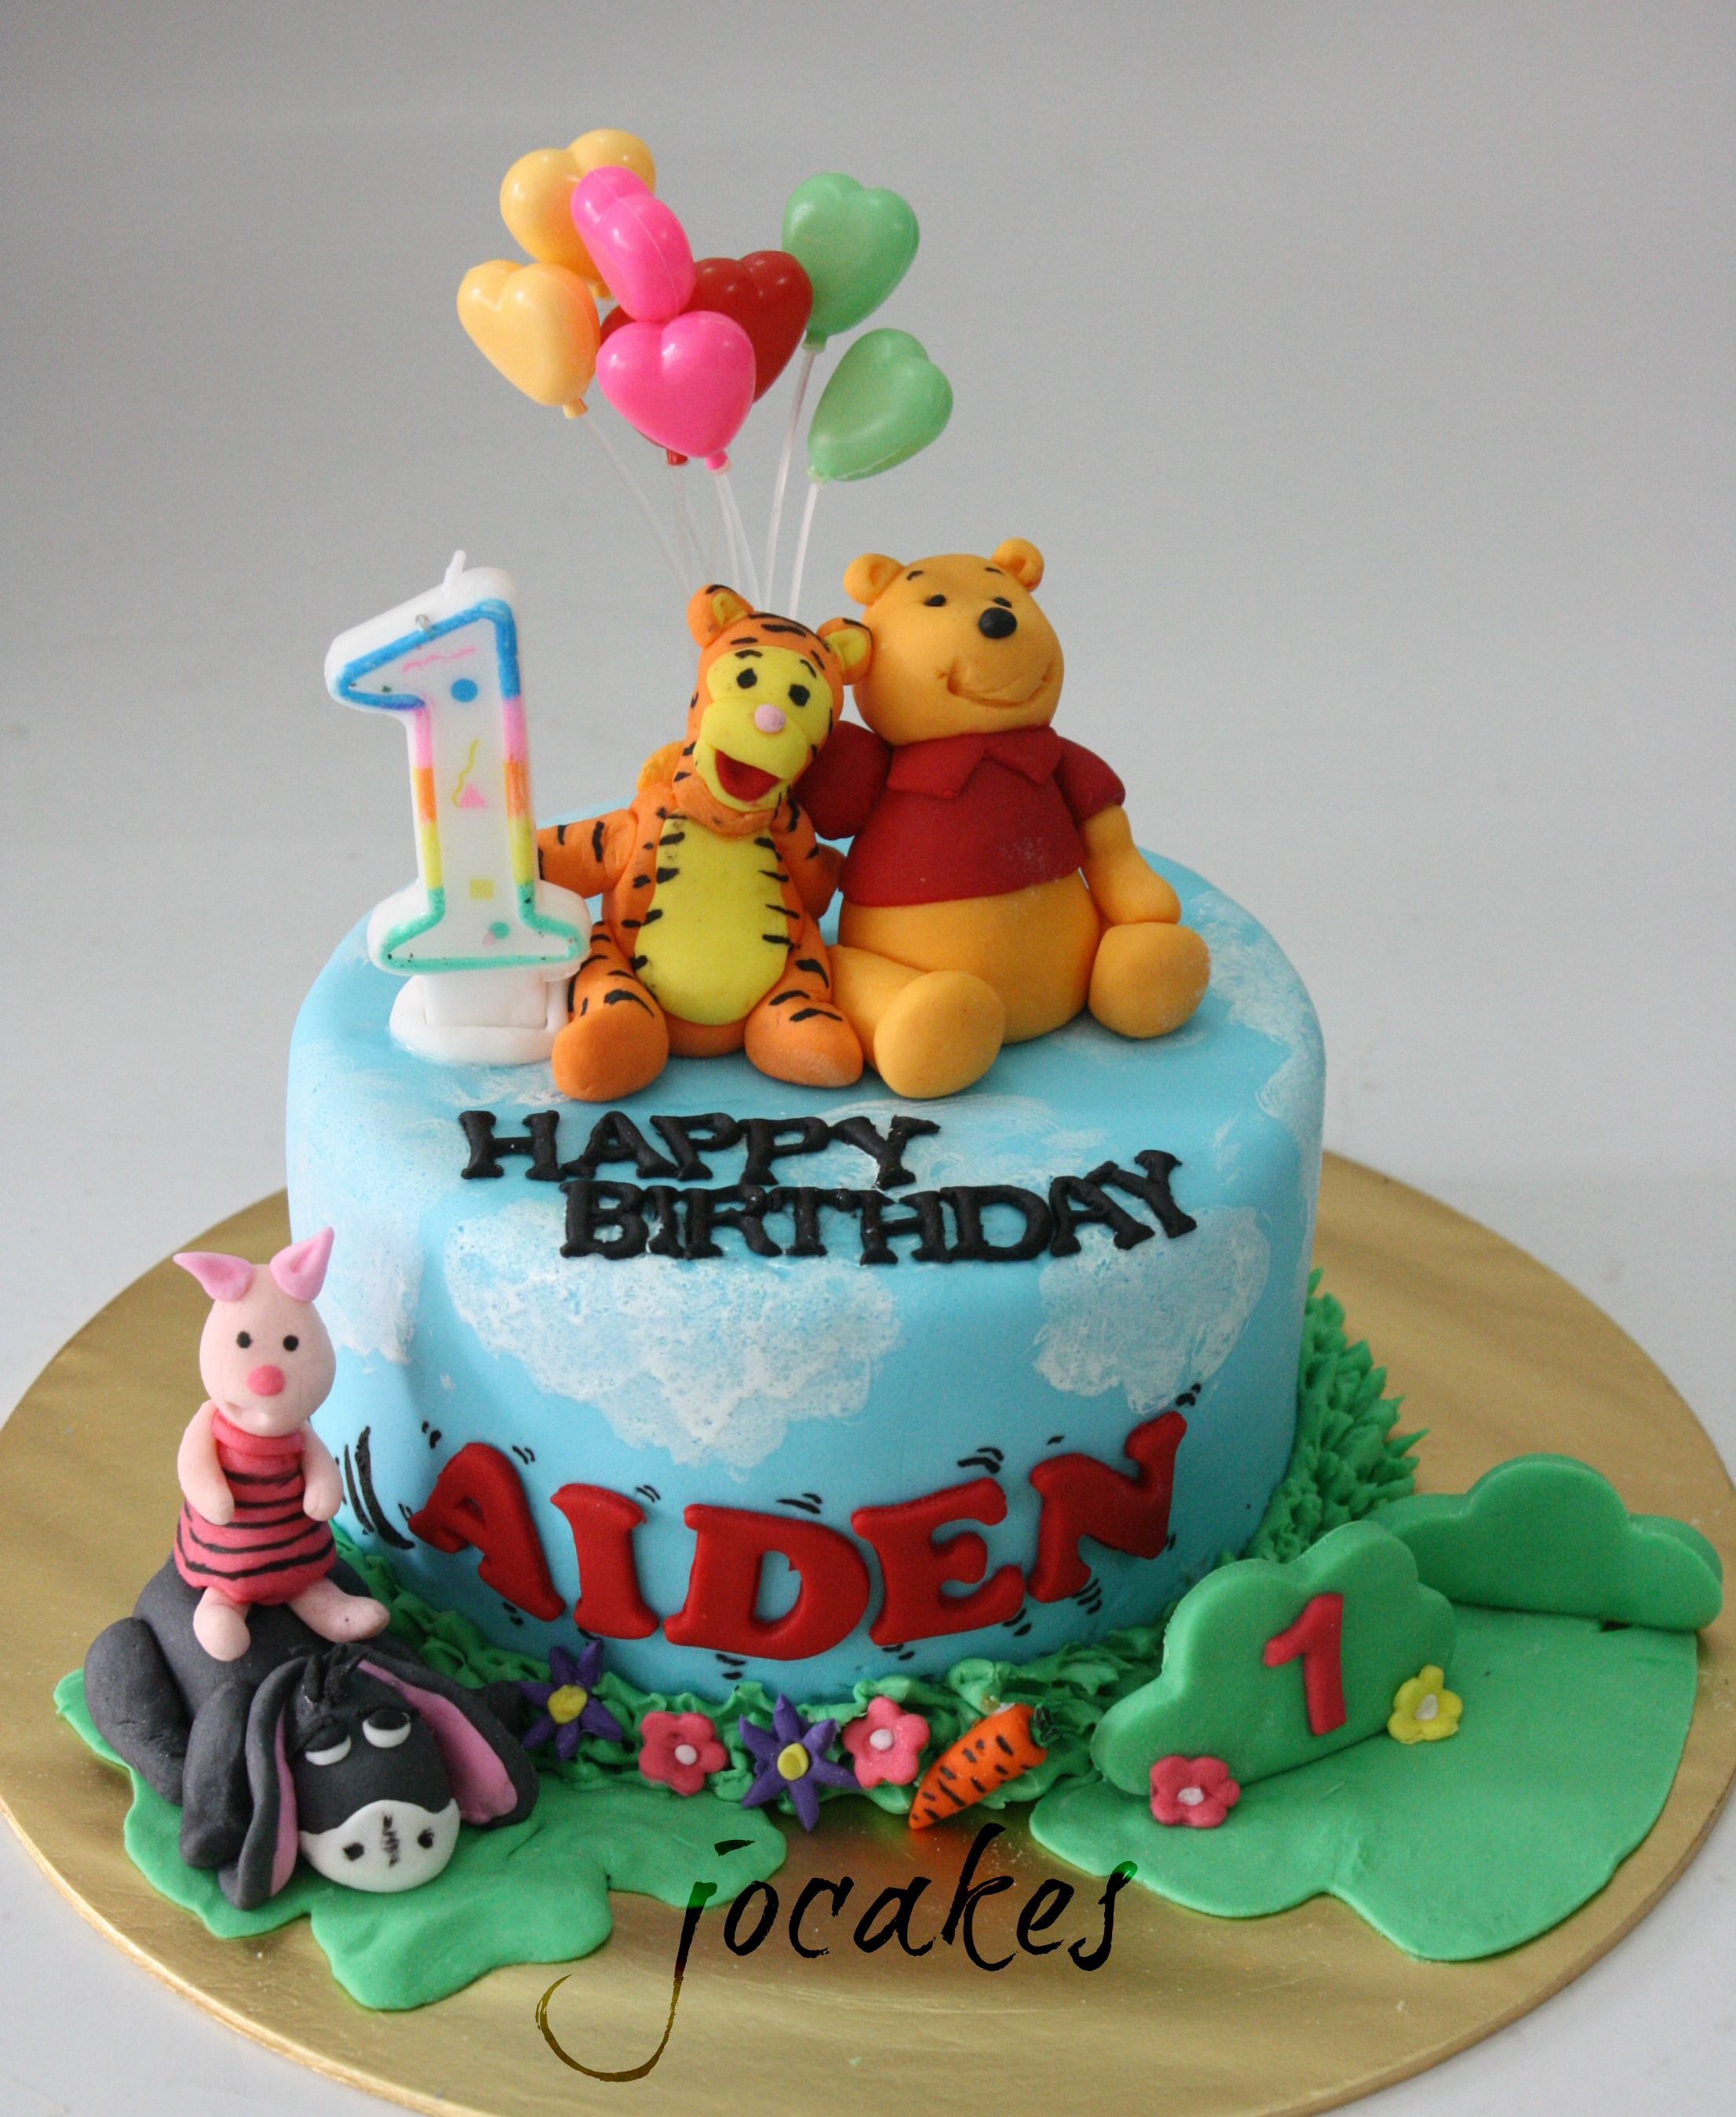 Birthday Cake For 12 Year Old Boy 9 1 Year Old Birthday Cakes For Boys Photo 1 Year Old Boy Birthday Birijus Com